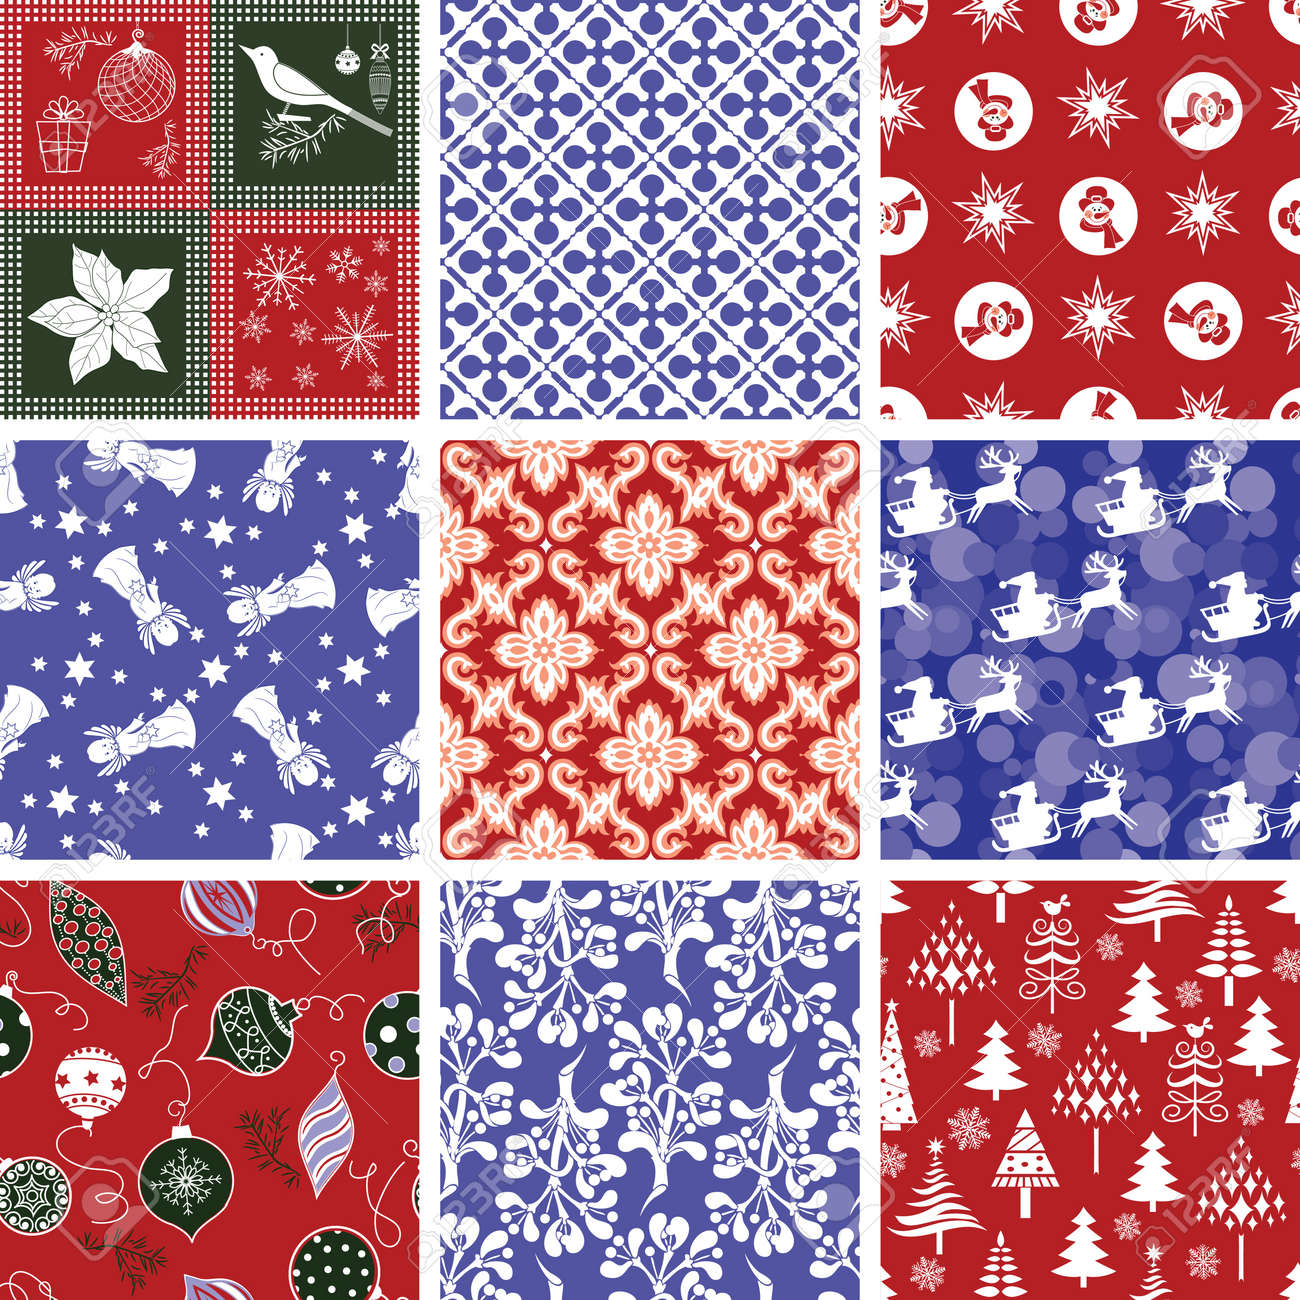 Set of Christmas Repeating Patterns - 10282673